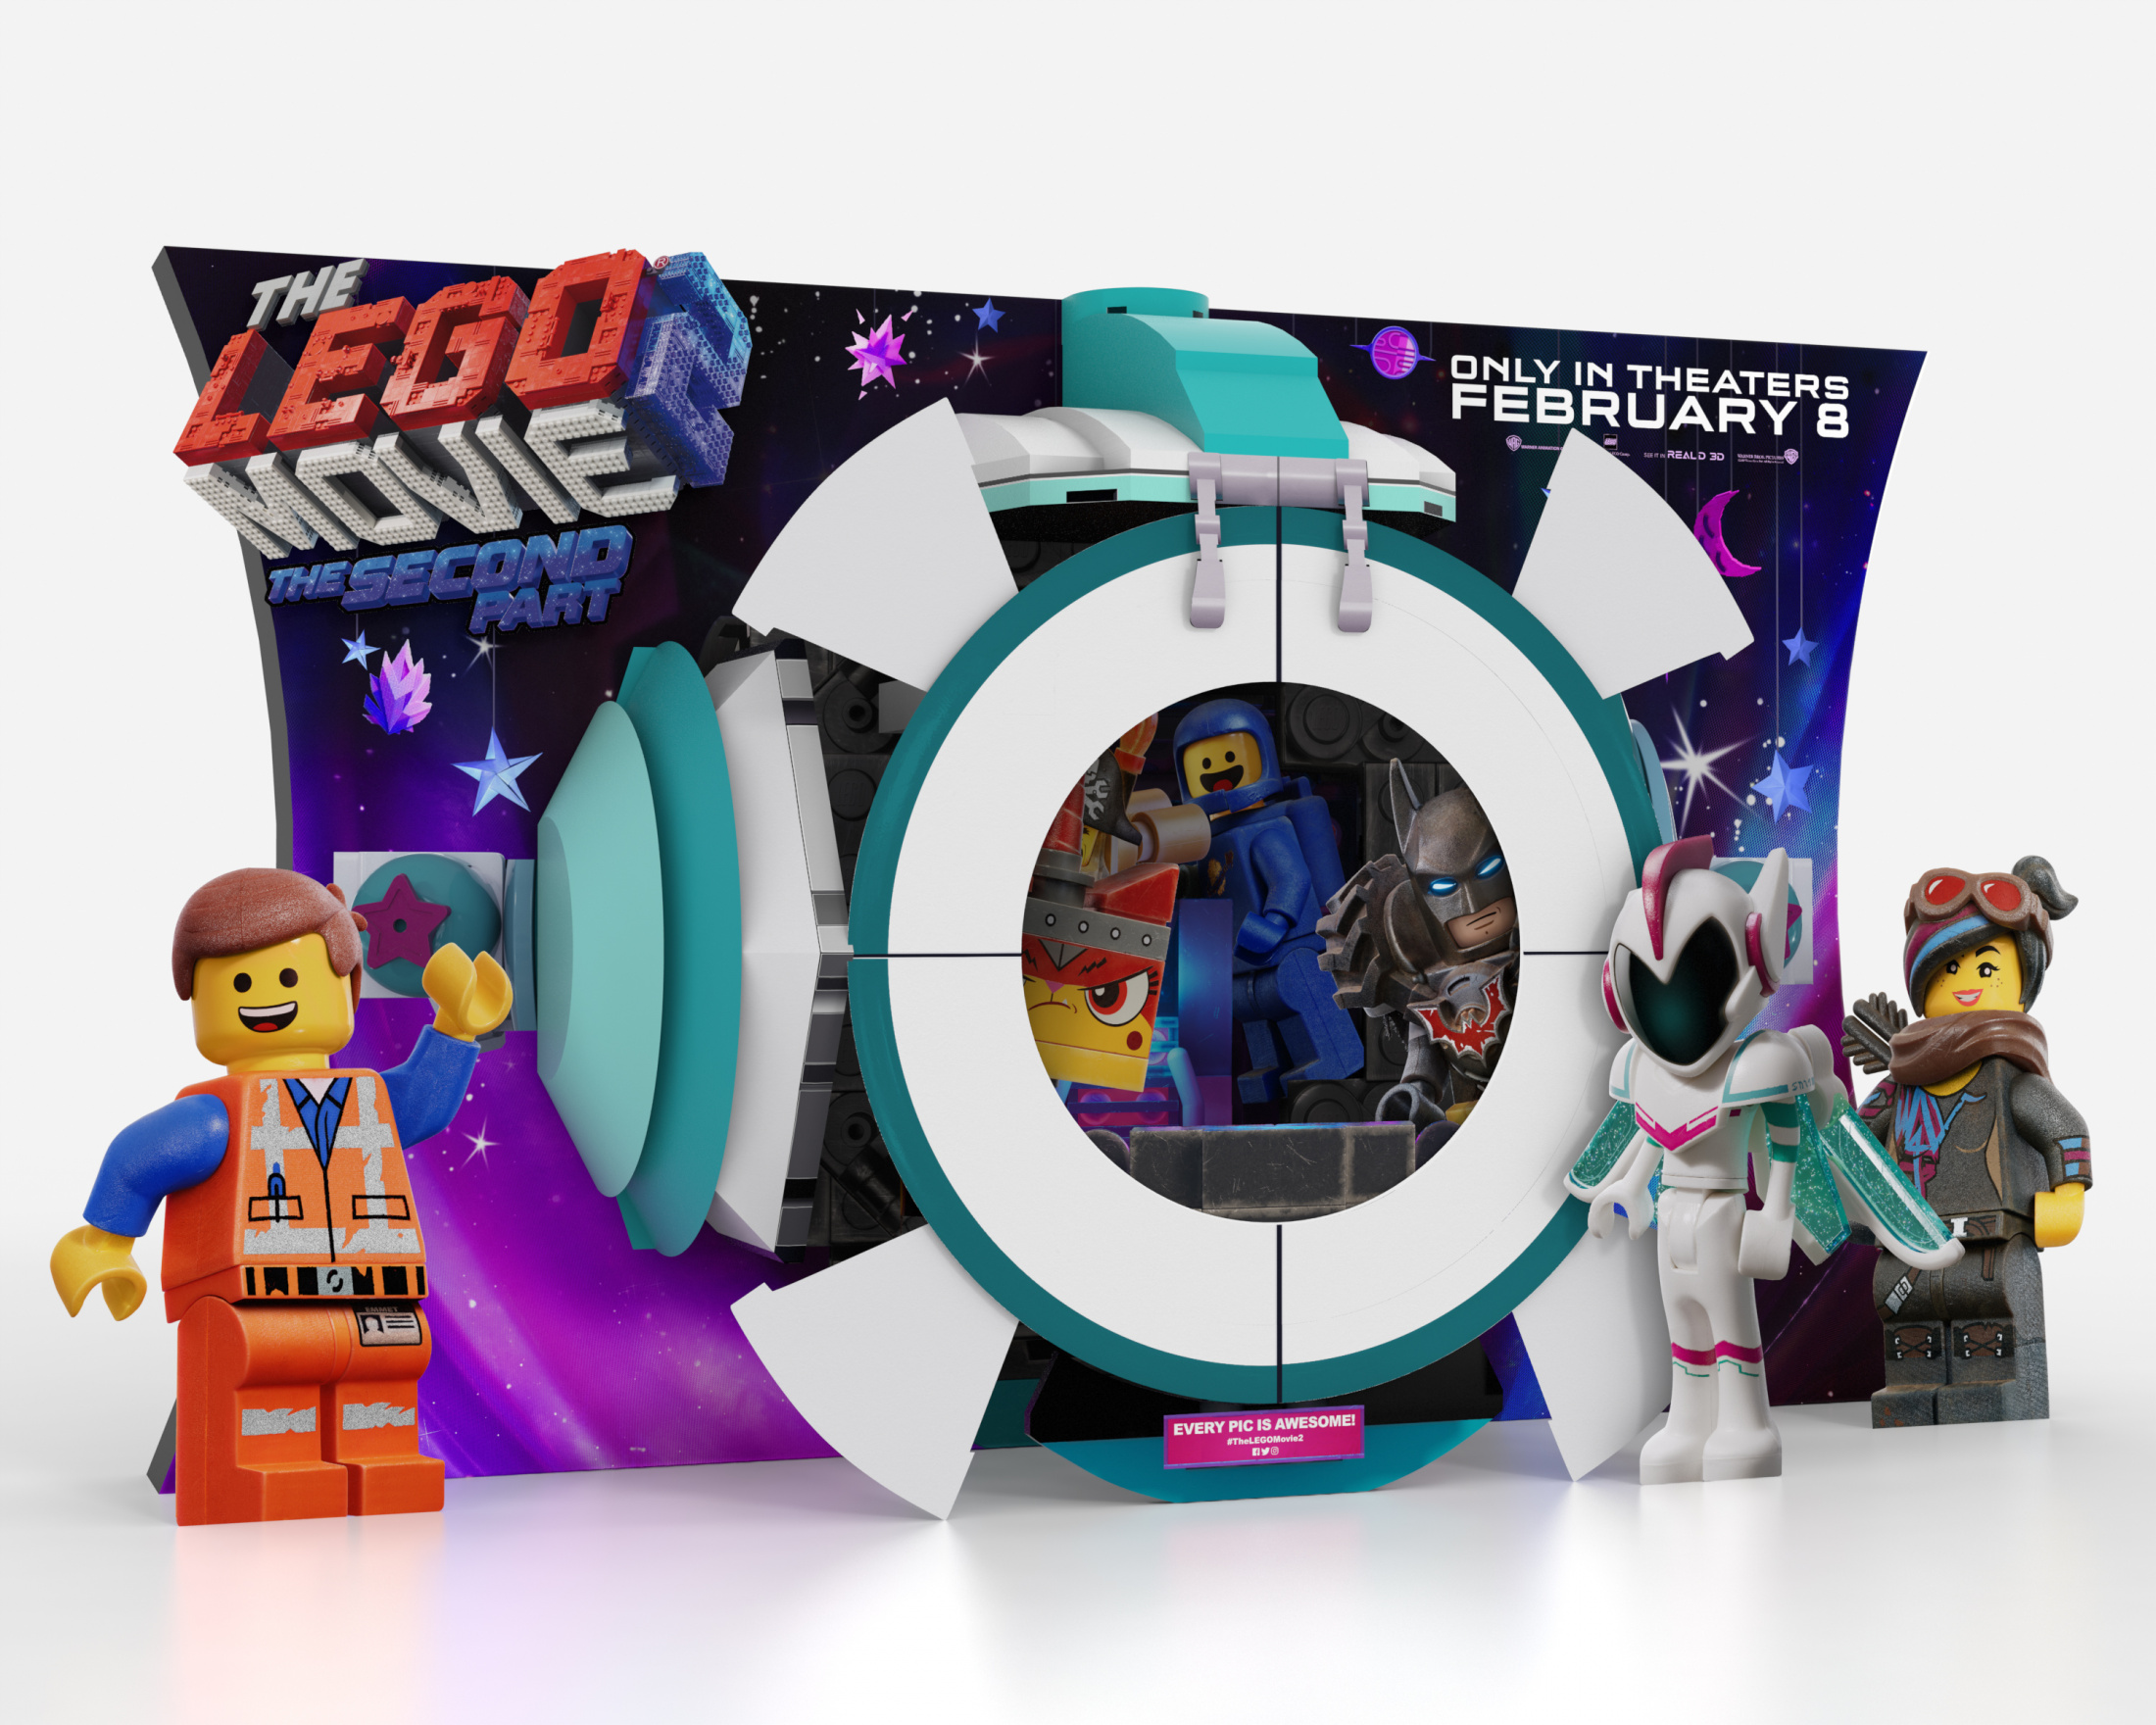 Thumbnail for The Lego Movie 2: The Second Part In-Theatre Standee